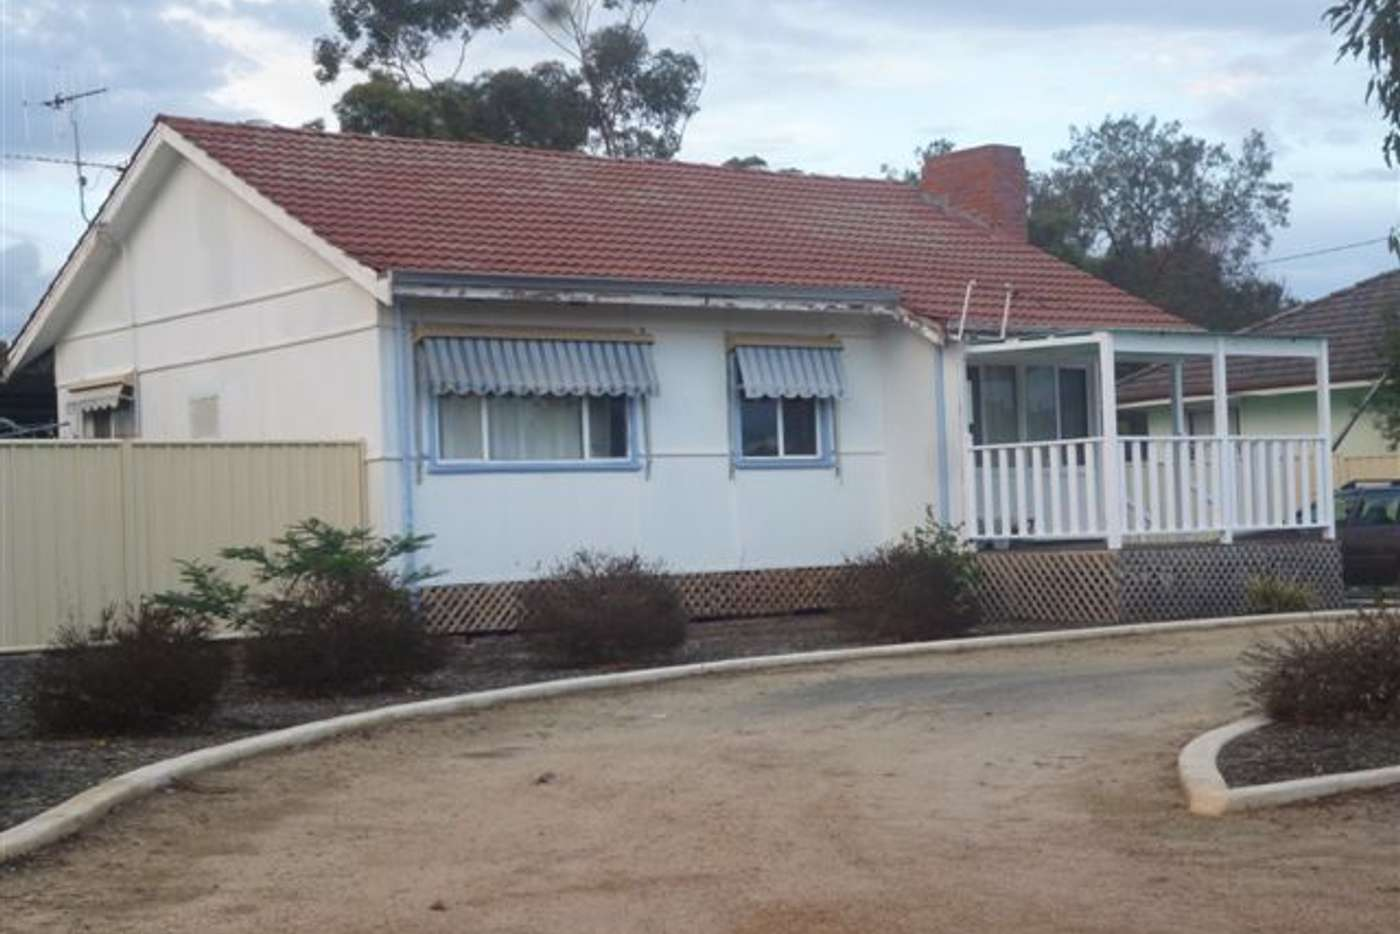 Main view of Homely house listing, 3 Kemble Terrace, Katanning WA 6317